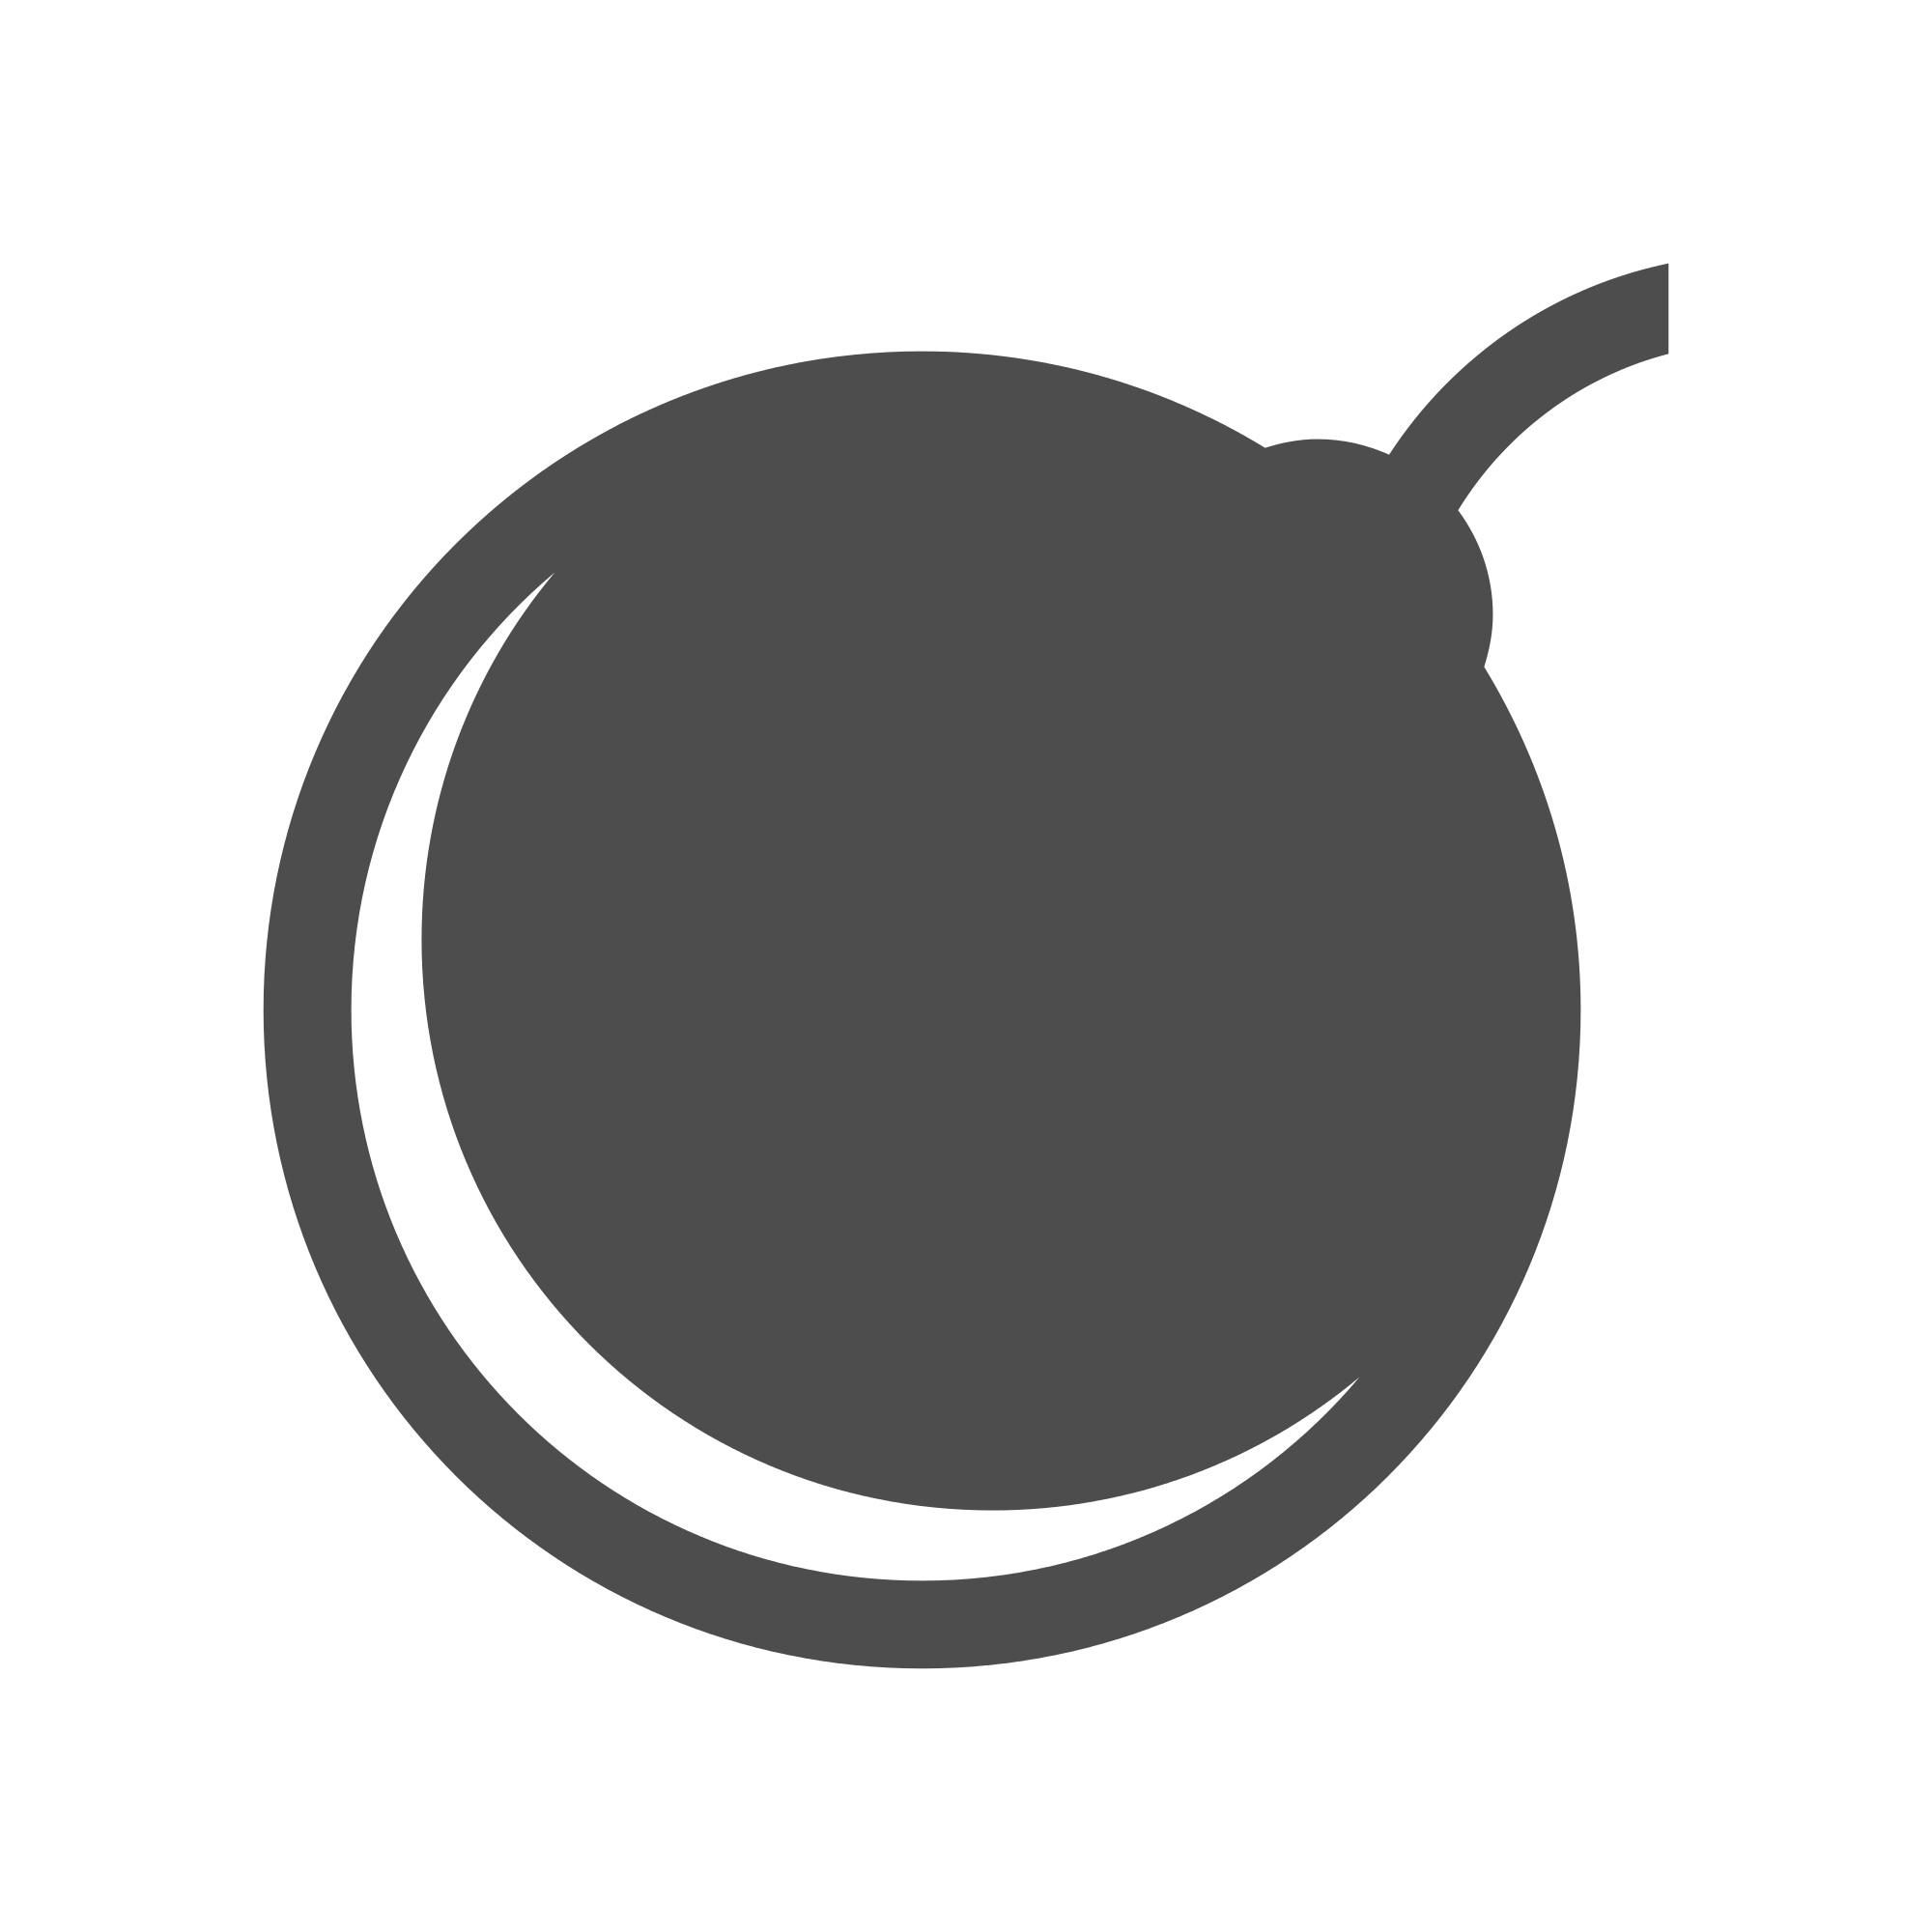 Bomb svg #8, Download drawings